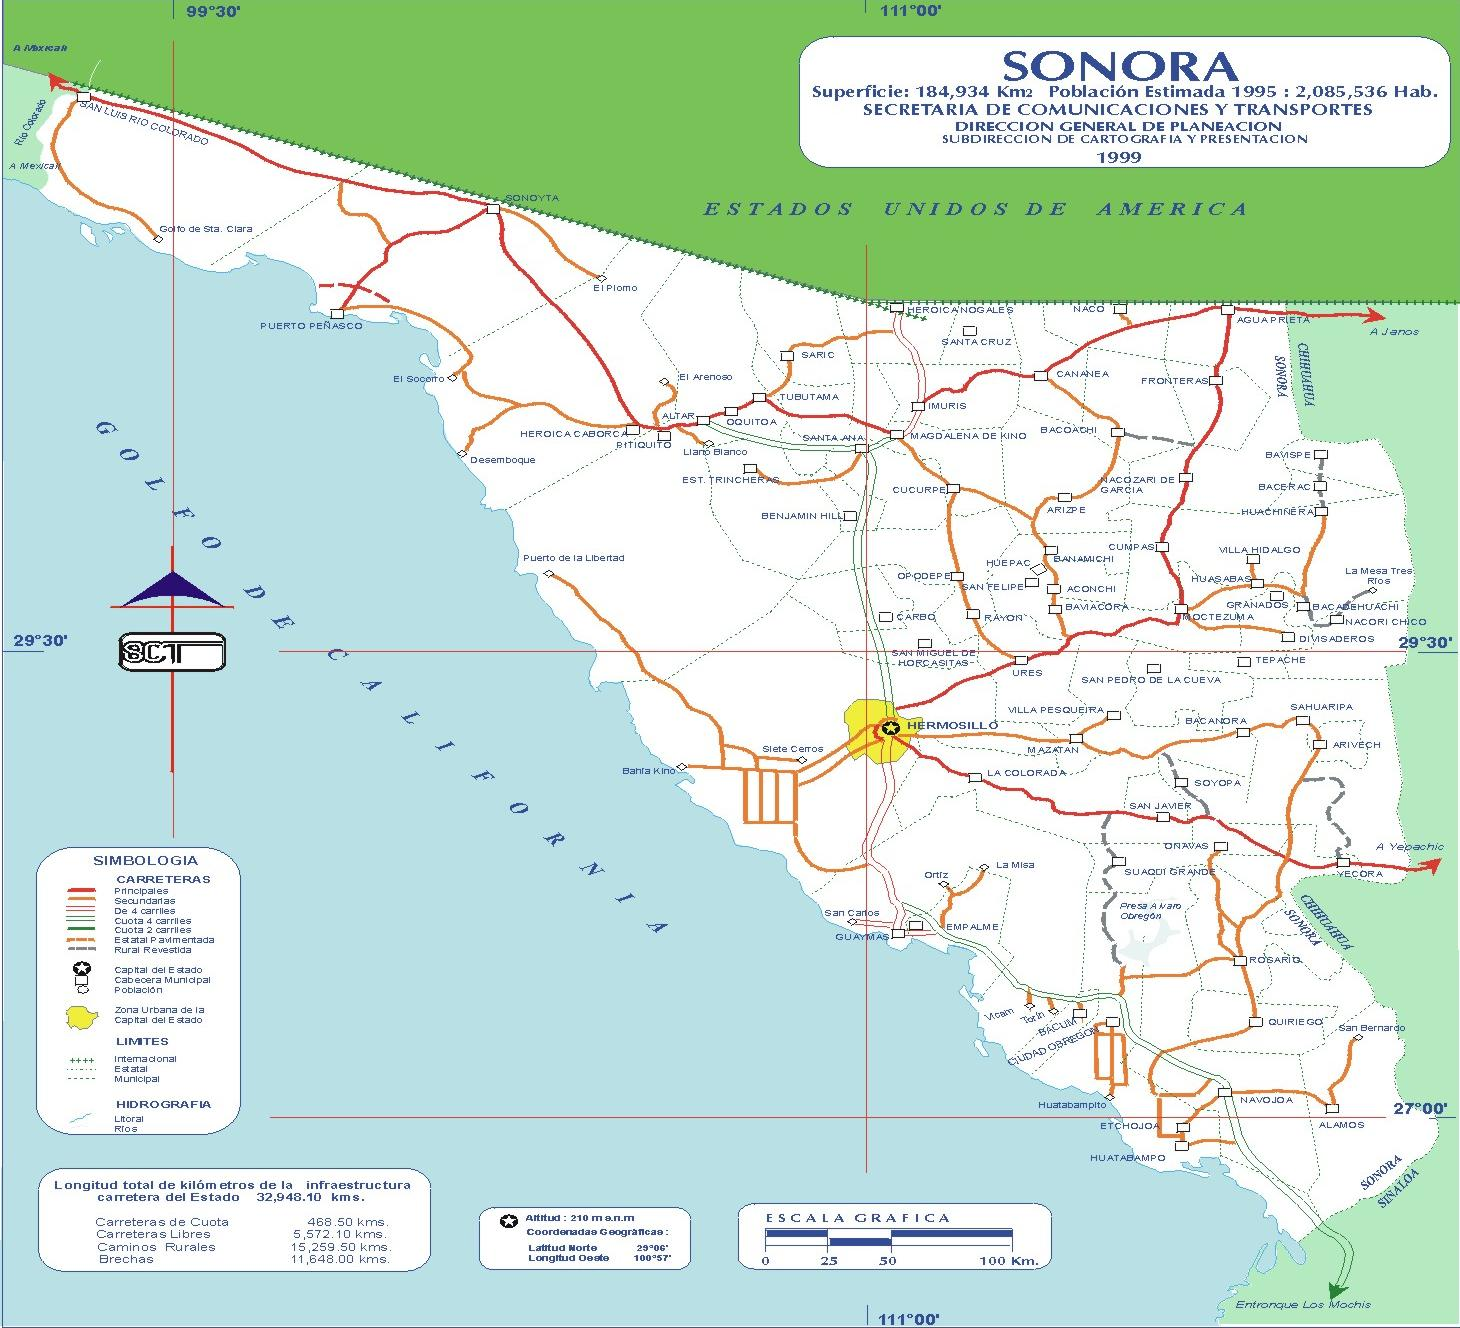 Map of Sonora (State), Mexico